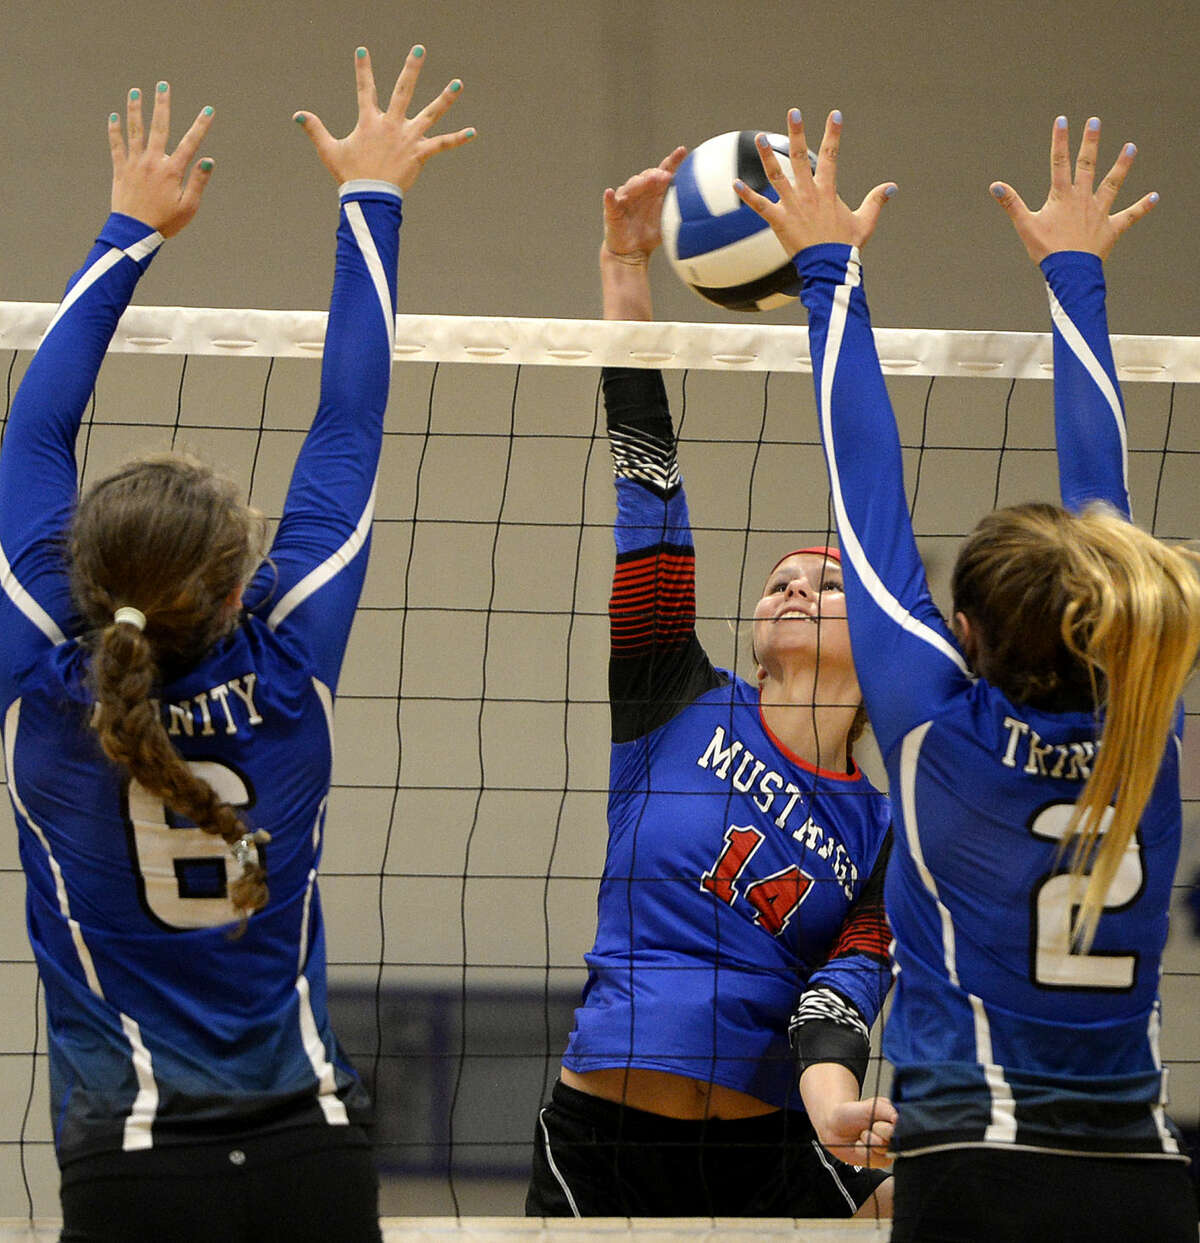 Midland Christian's Meagan Thomason (14) attempts to hit past Trinity's Mady Walker (6) and Carrie Herd (2) on Tuesday, August 11, 2015 at Beal Gymnasium. James Durbin/Reporter-Telegram